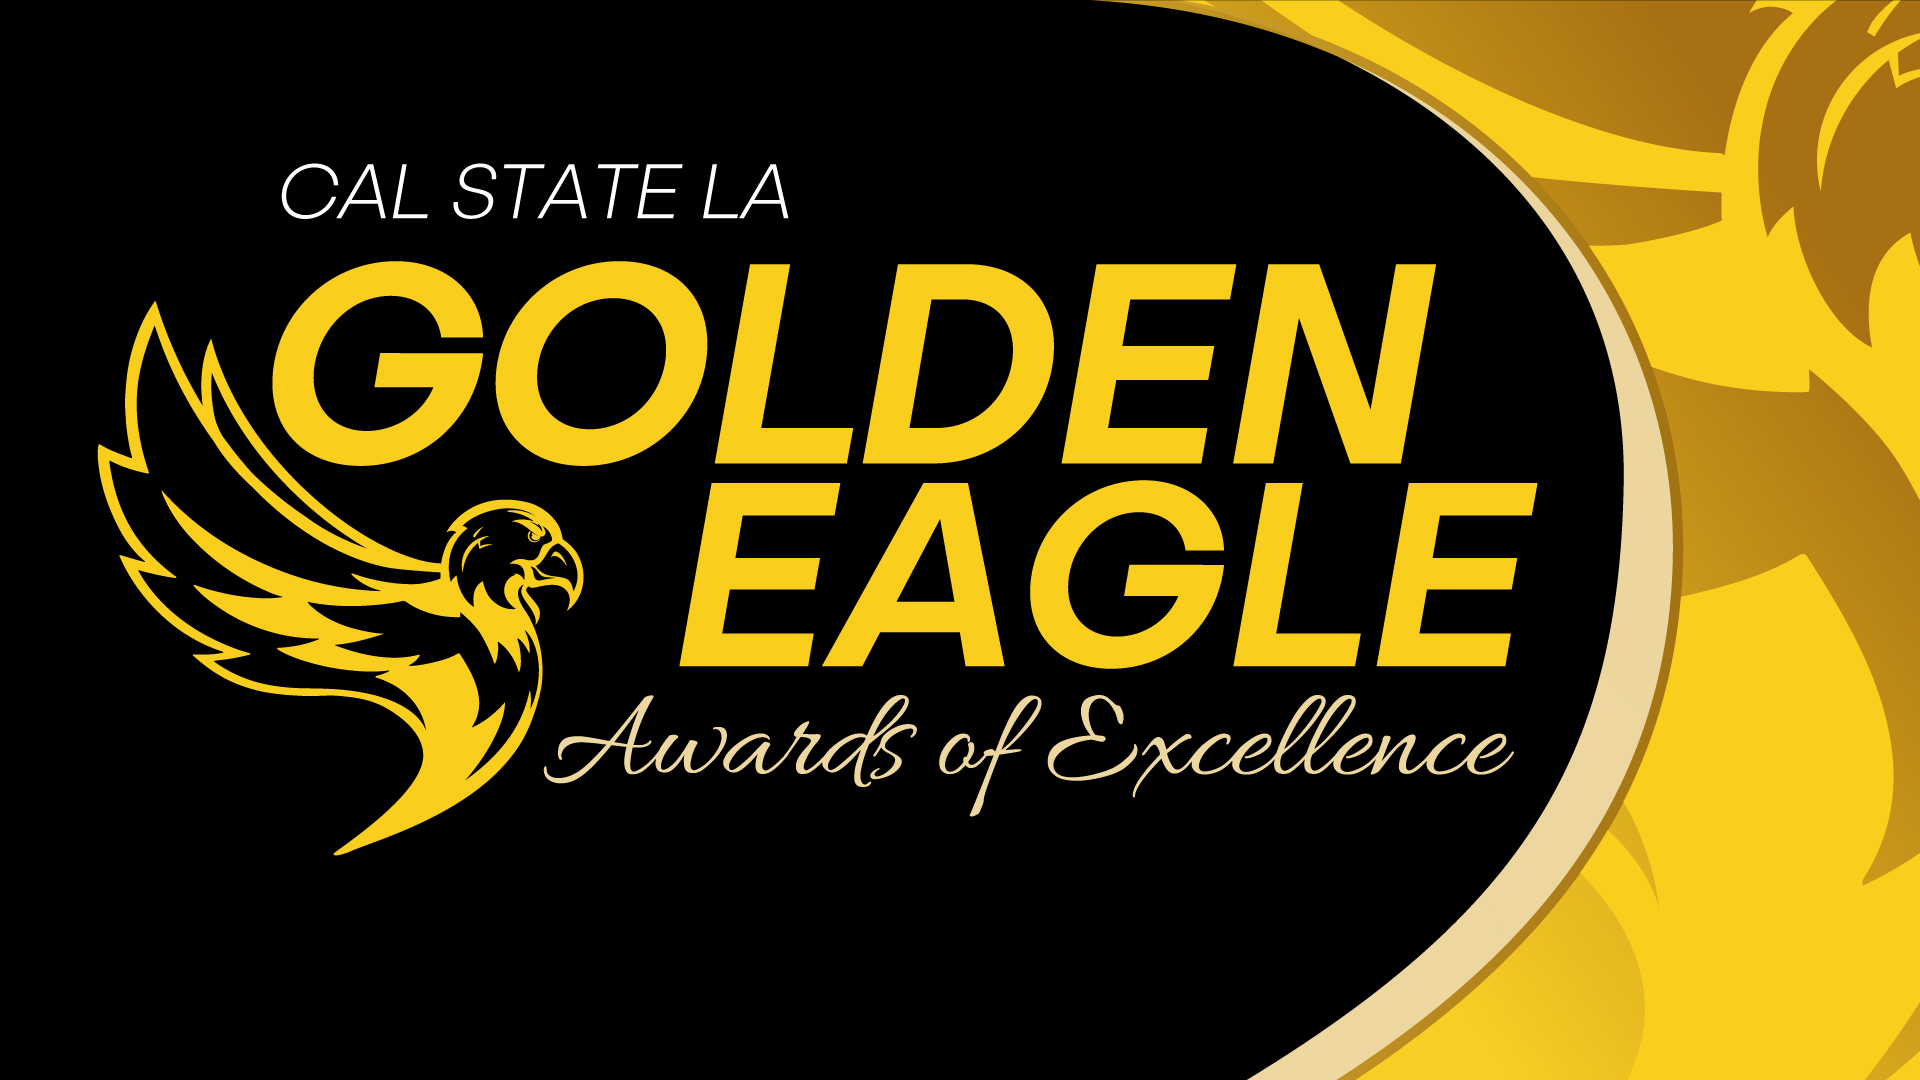 University student union golden eagle award of excellence cover thecheapjerseys Image collections